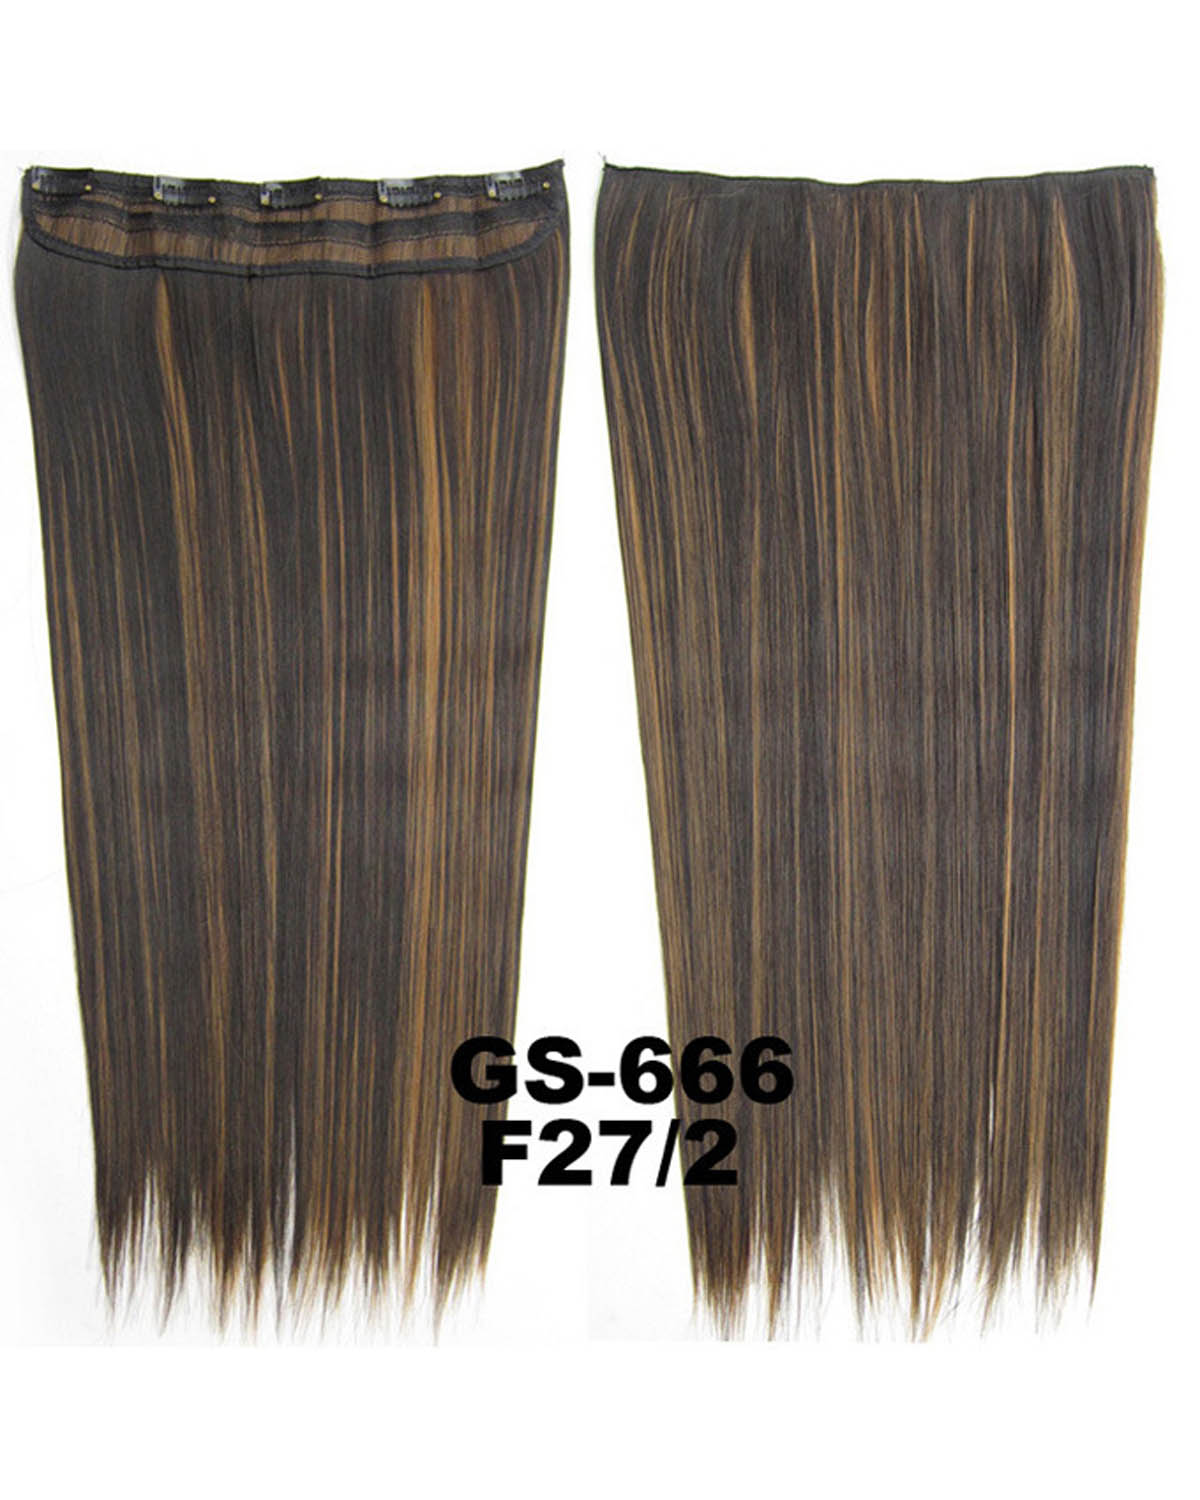 24 inch Dense Straight Long One Piece 5 Clips Clip in Synthetic Hair Extension F27/2